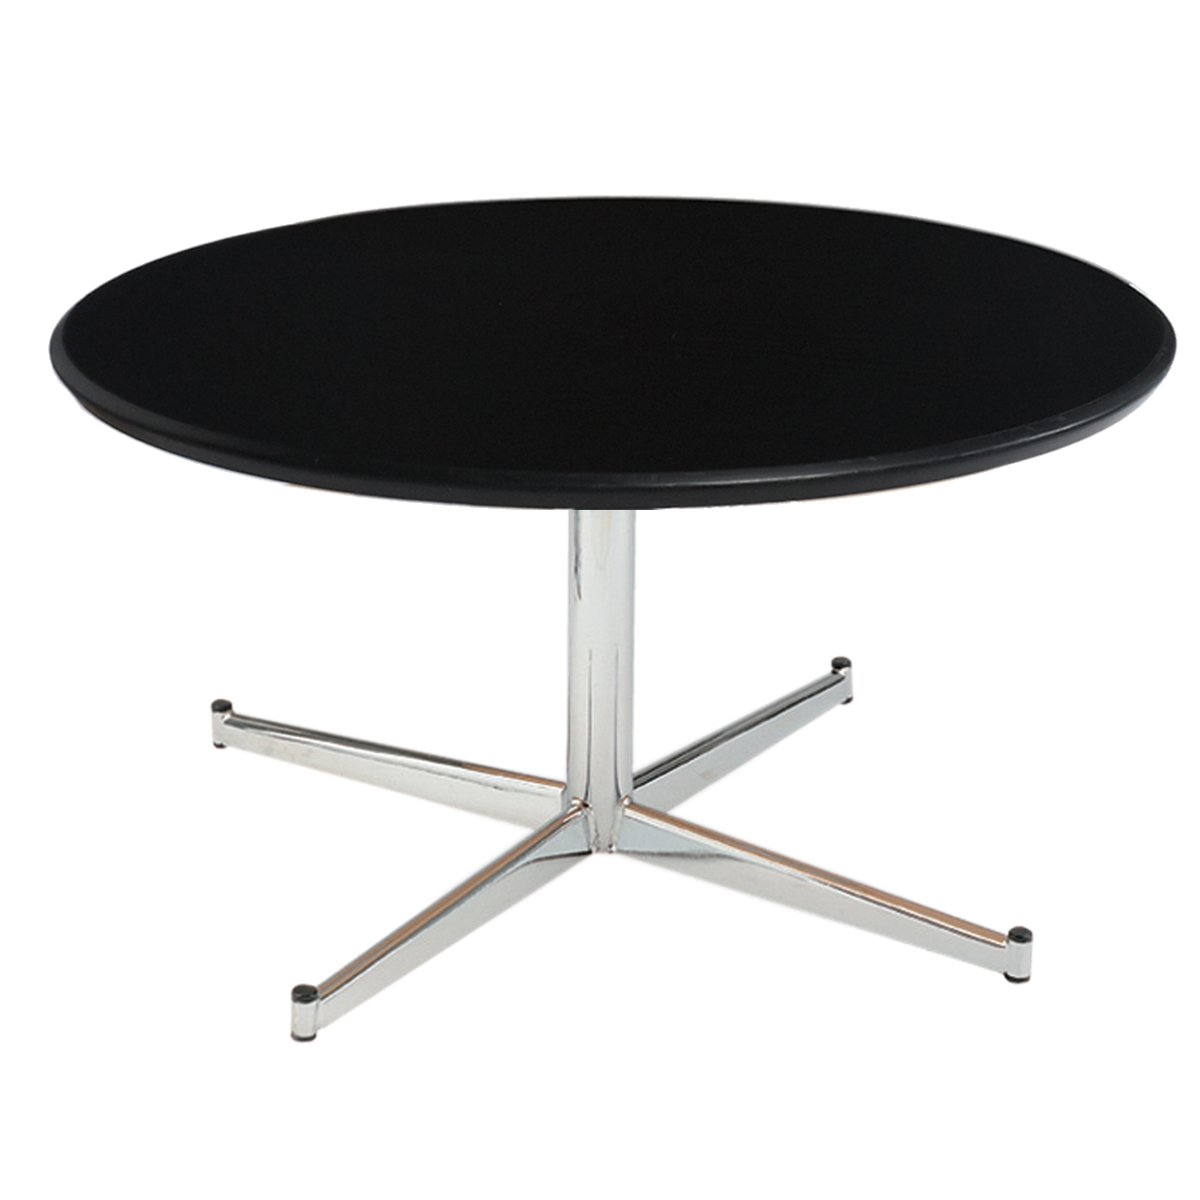 Low Black Table Black Malouines Low Table Ø 60 Internation Moduling